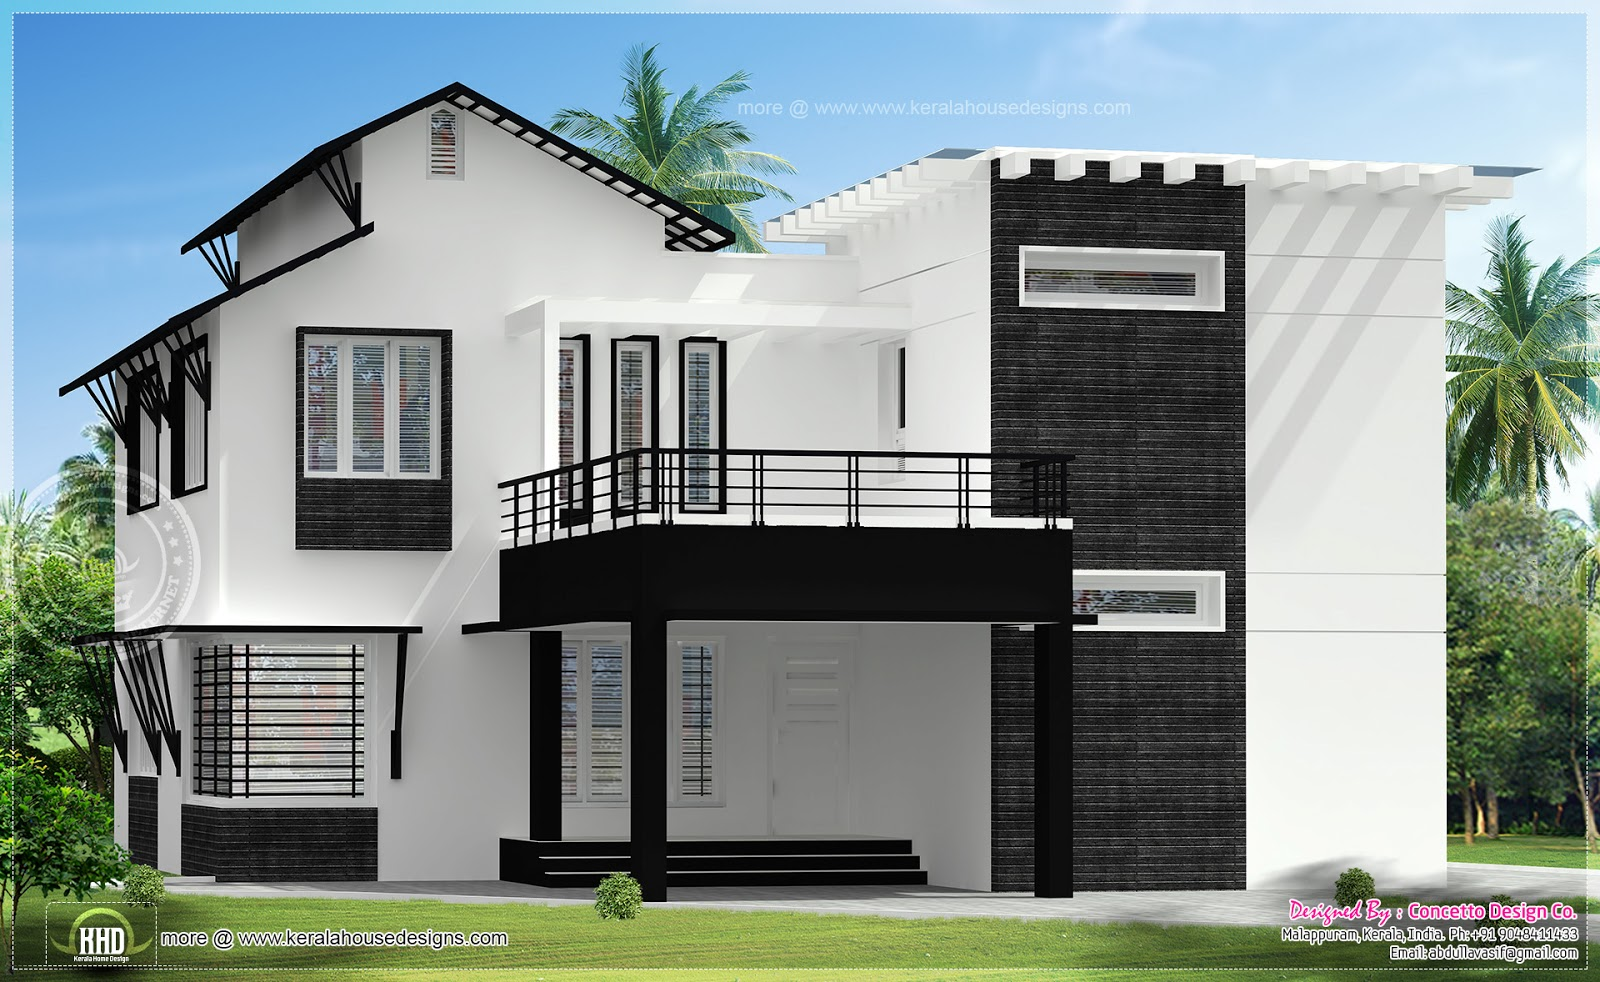 5 different house exteriors by concetto design kerala for Different types of house plans